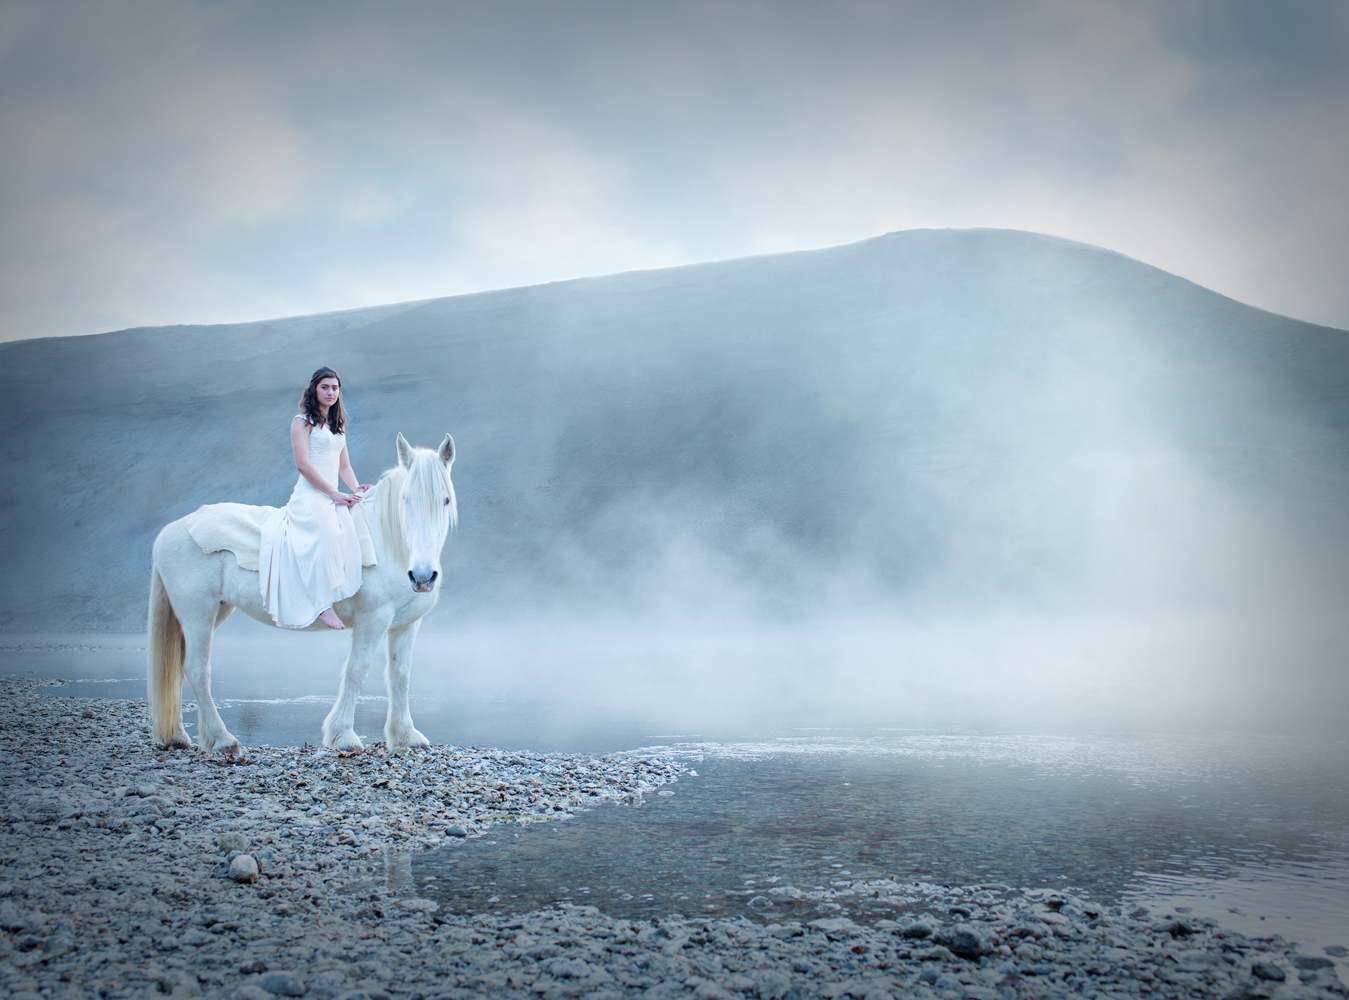 Women on a white horse wearing white dress, misty morning lake